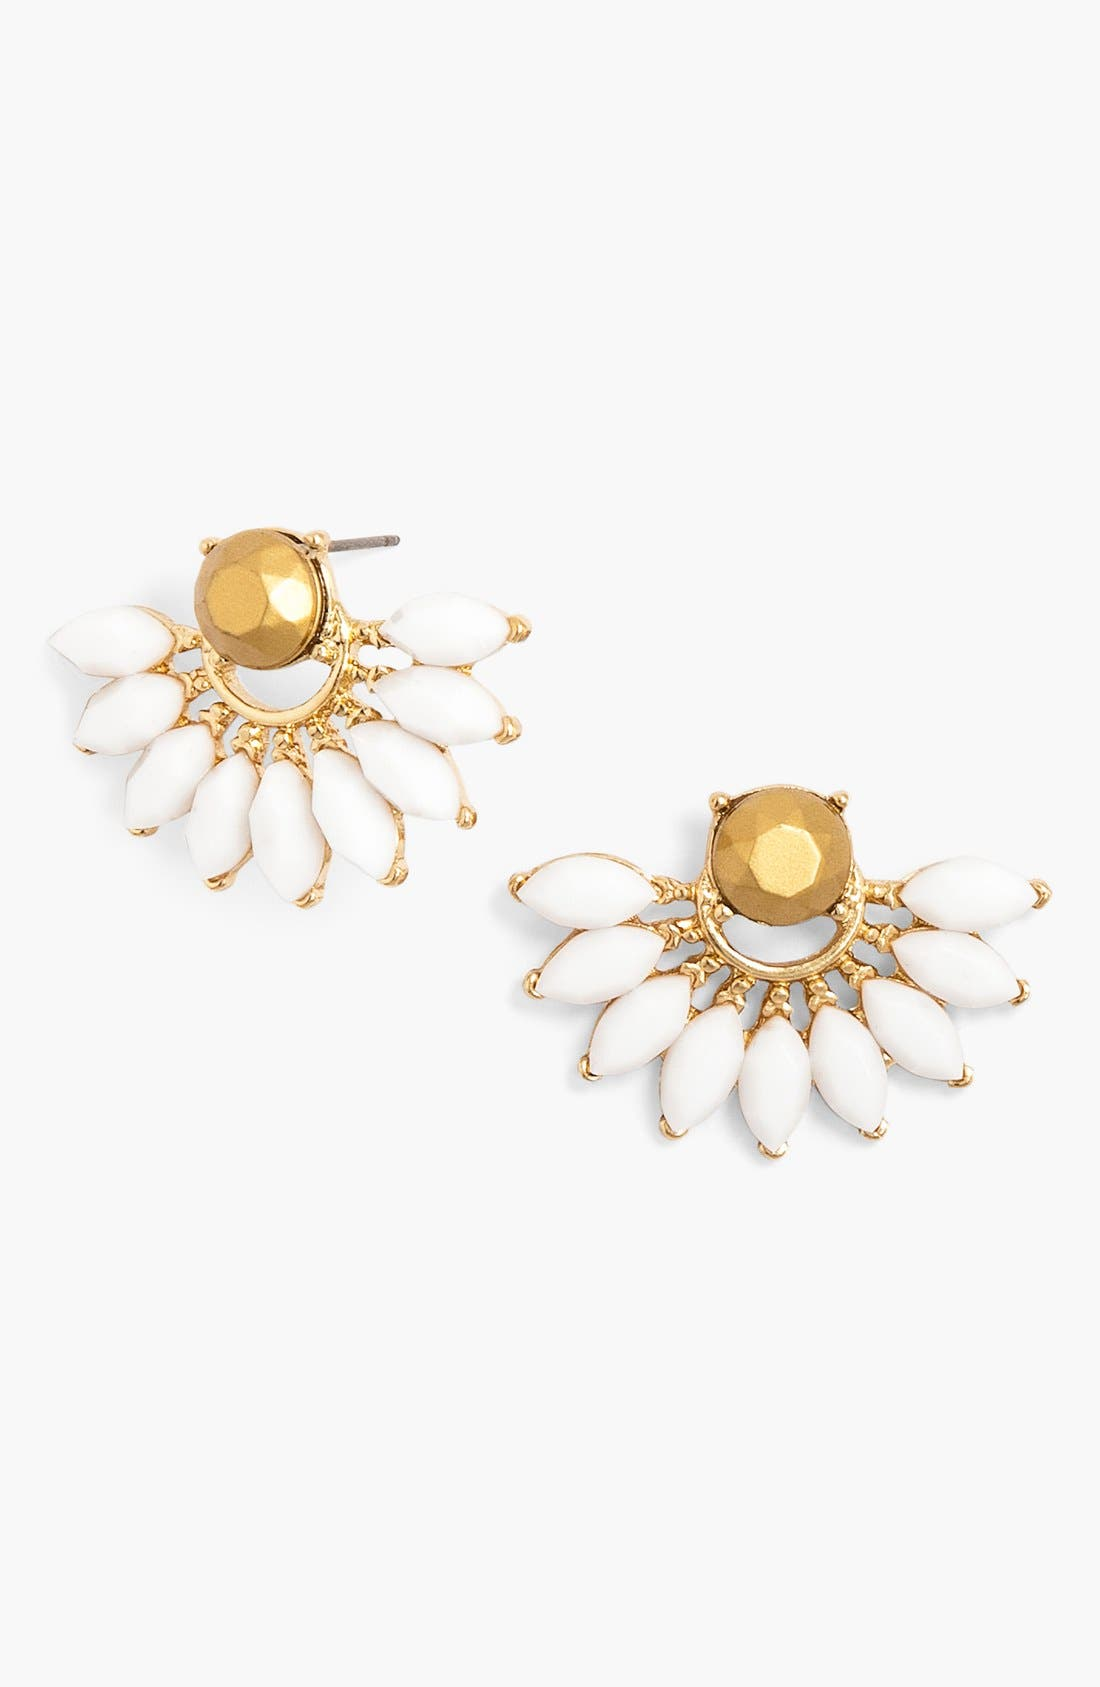 Main Image - BaubleBar 'Peacock' Fan Stud Earrings